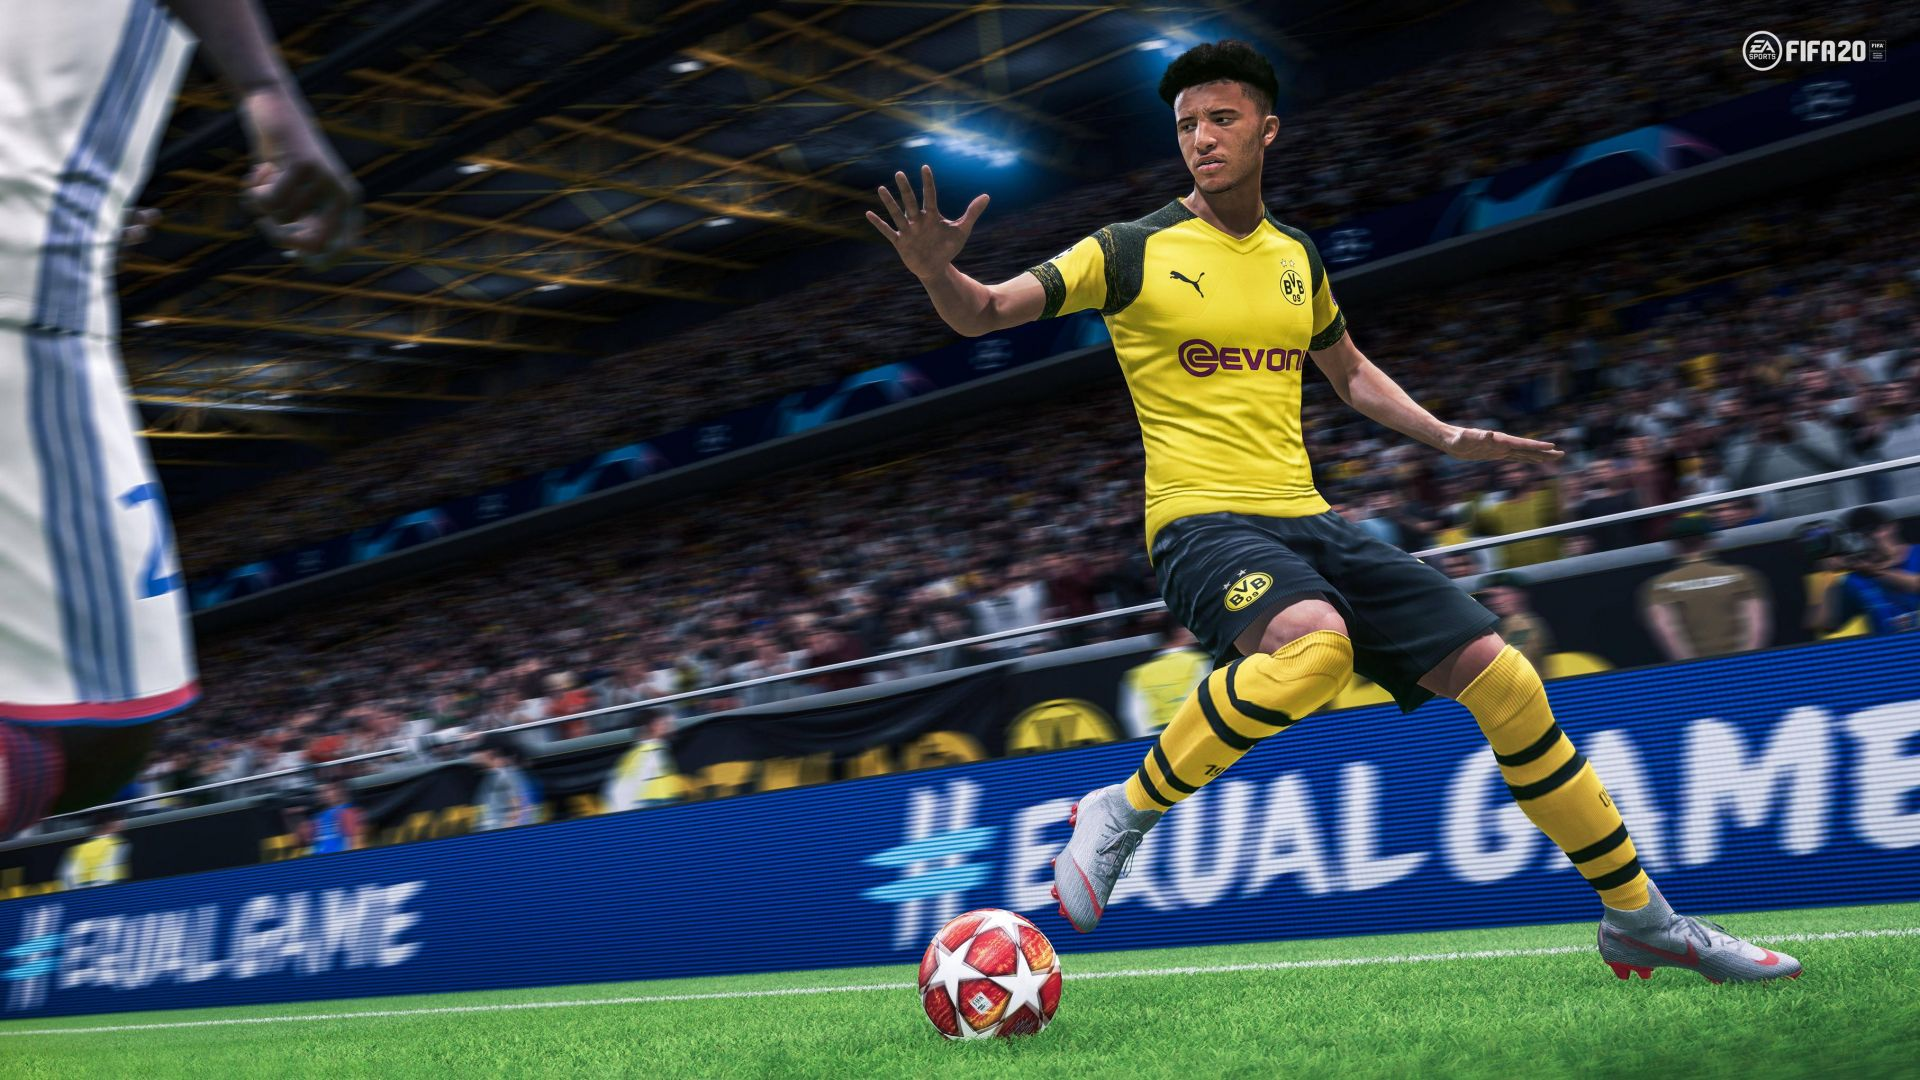 Фифа 2020, FIFA 20 Volta, E3 2019, screenshot, 4K (horizontal)